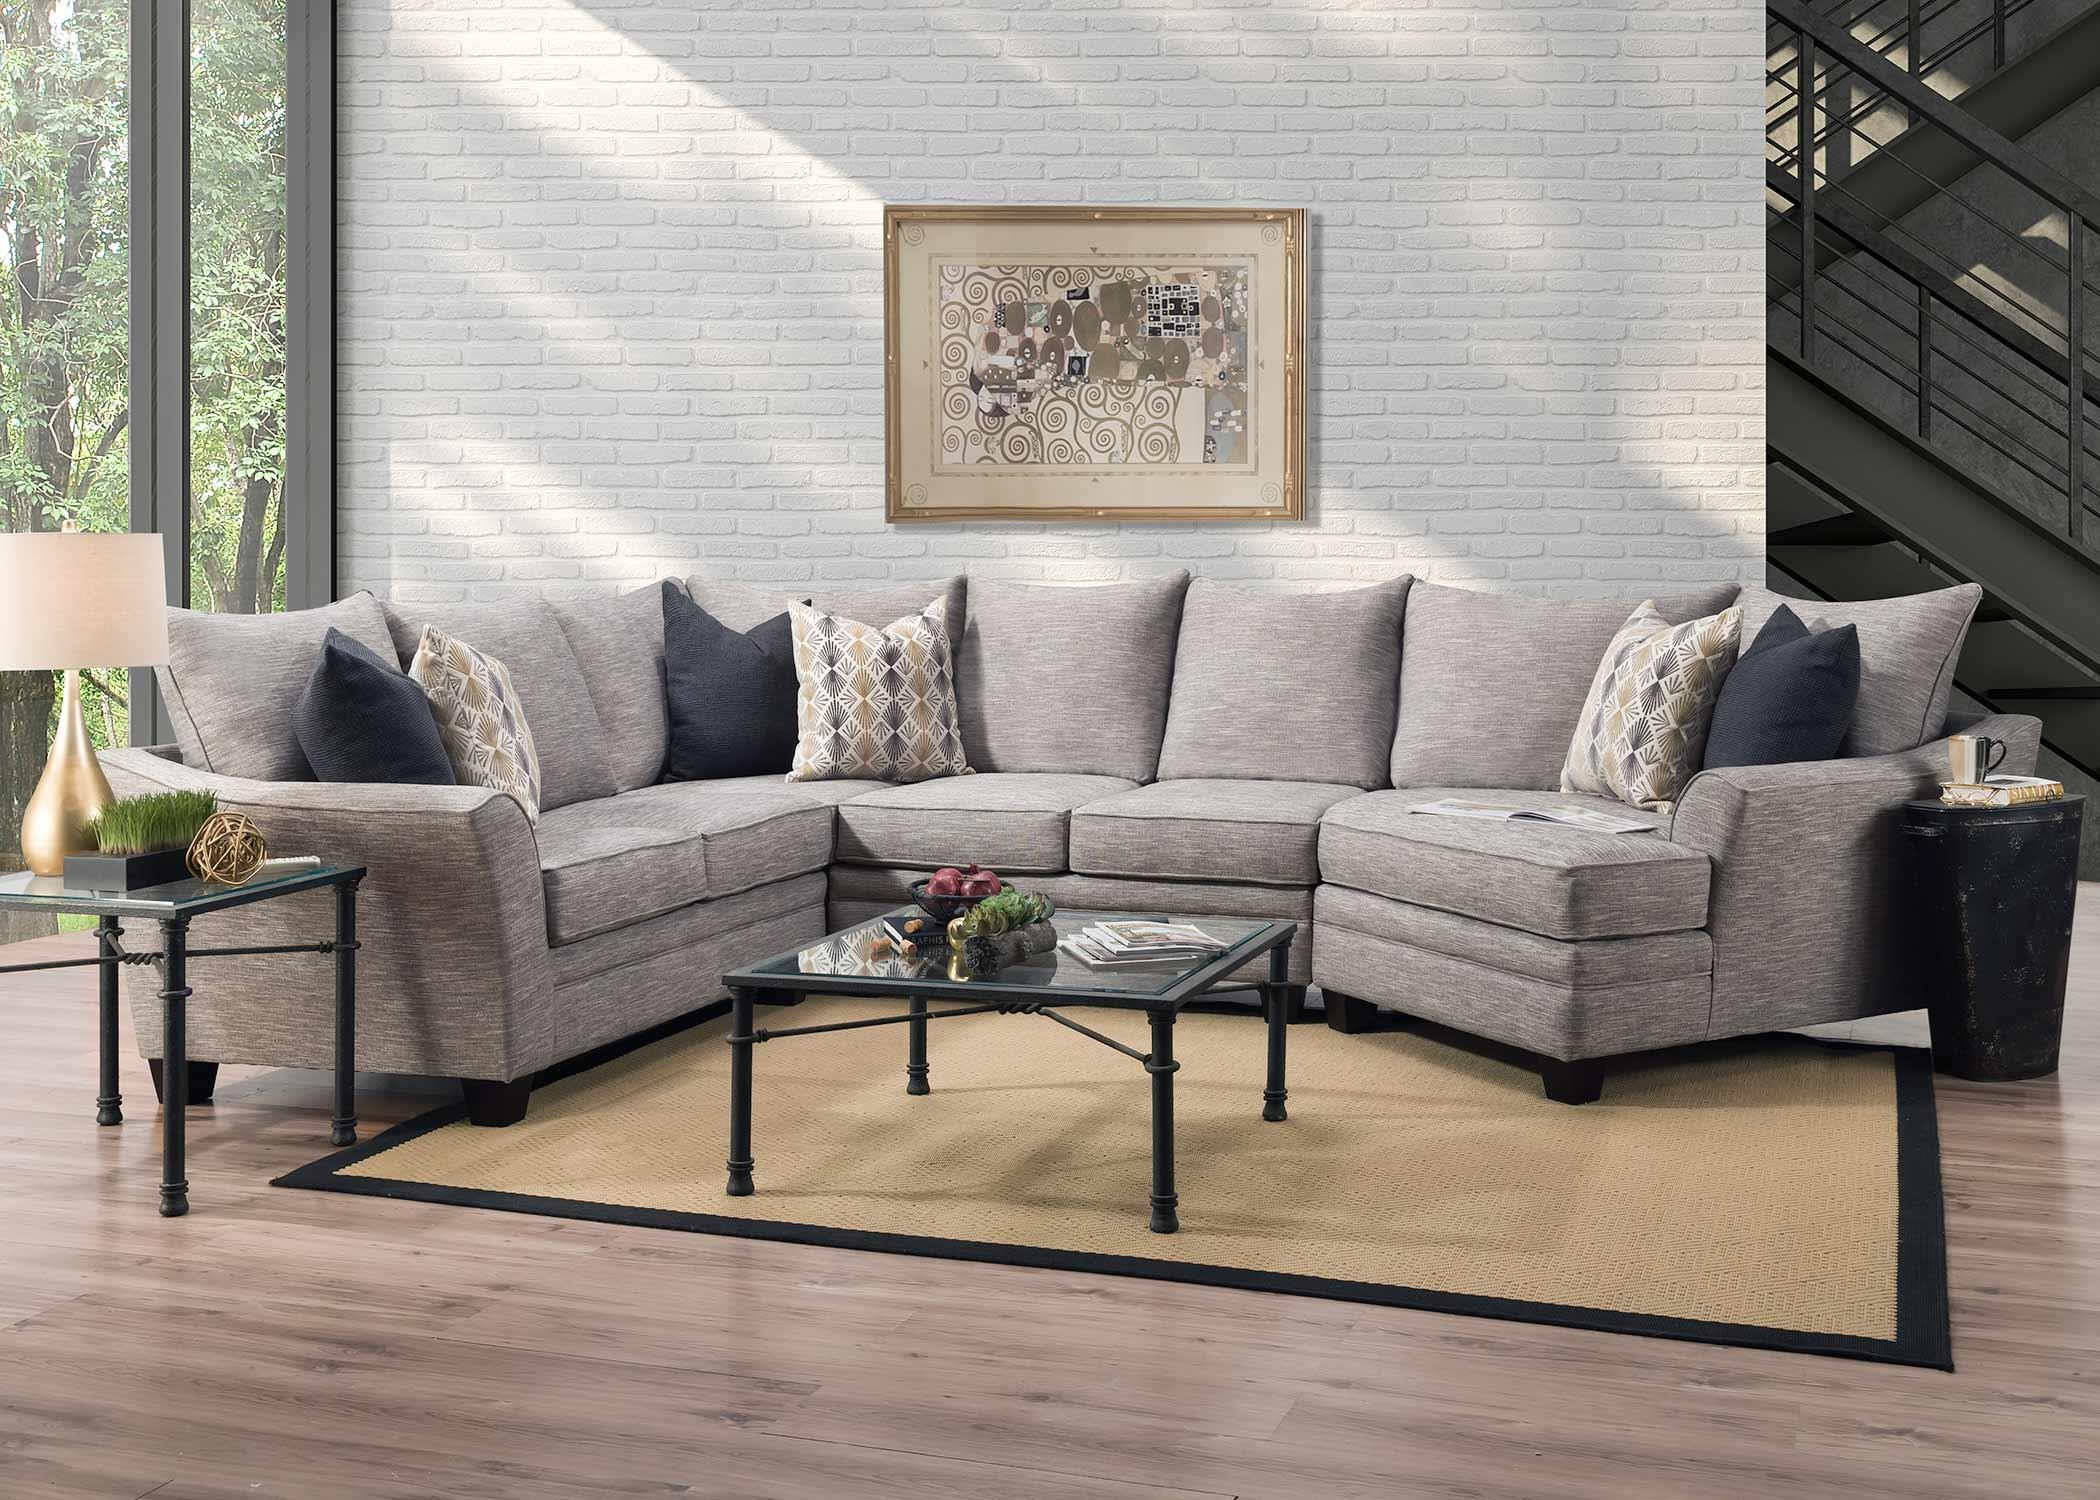 983 Sectional by Franklin at Furniture Fair - North Carolina